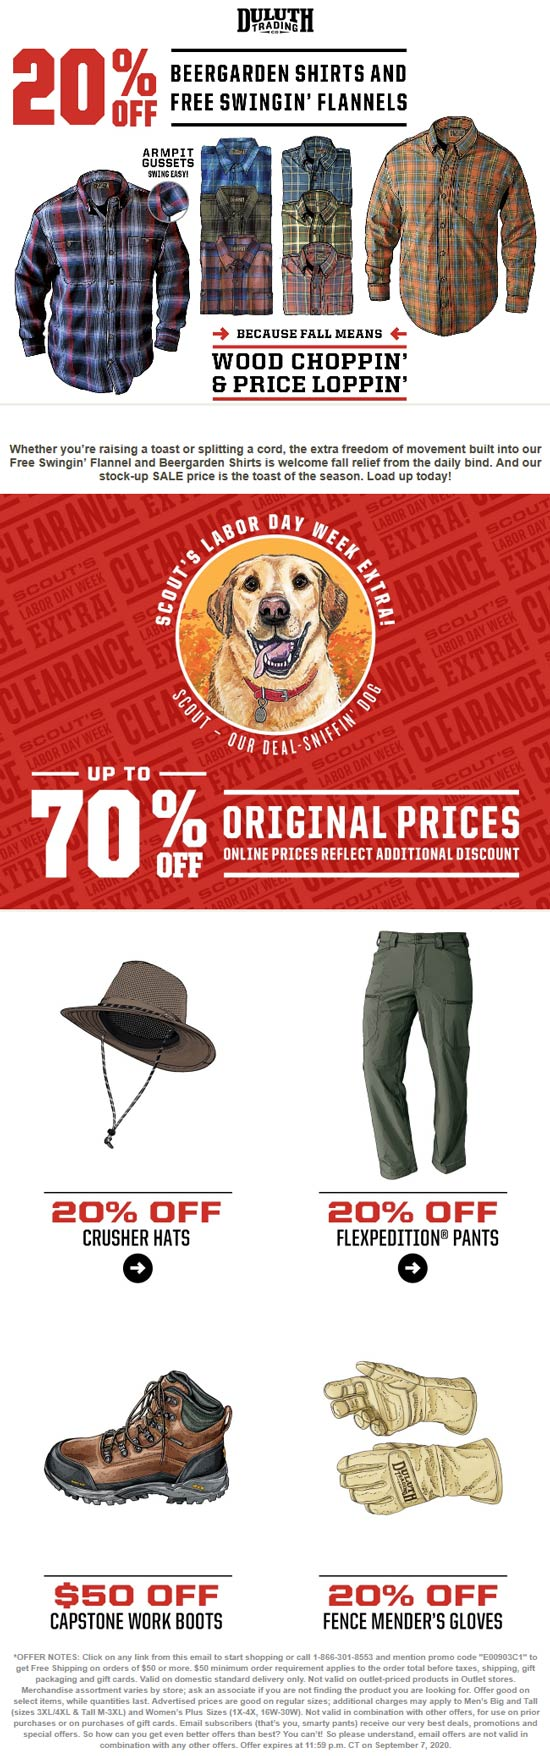 Duluth Trading Co stores Coupon  20% off beergarden shirts & flannels at Duluth Trading Co #duluthtradingco